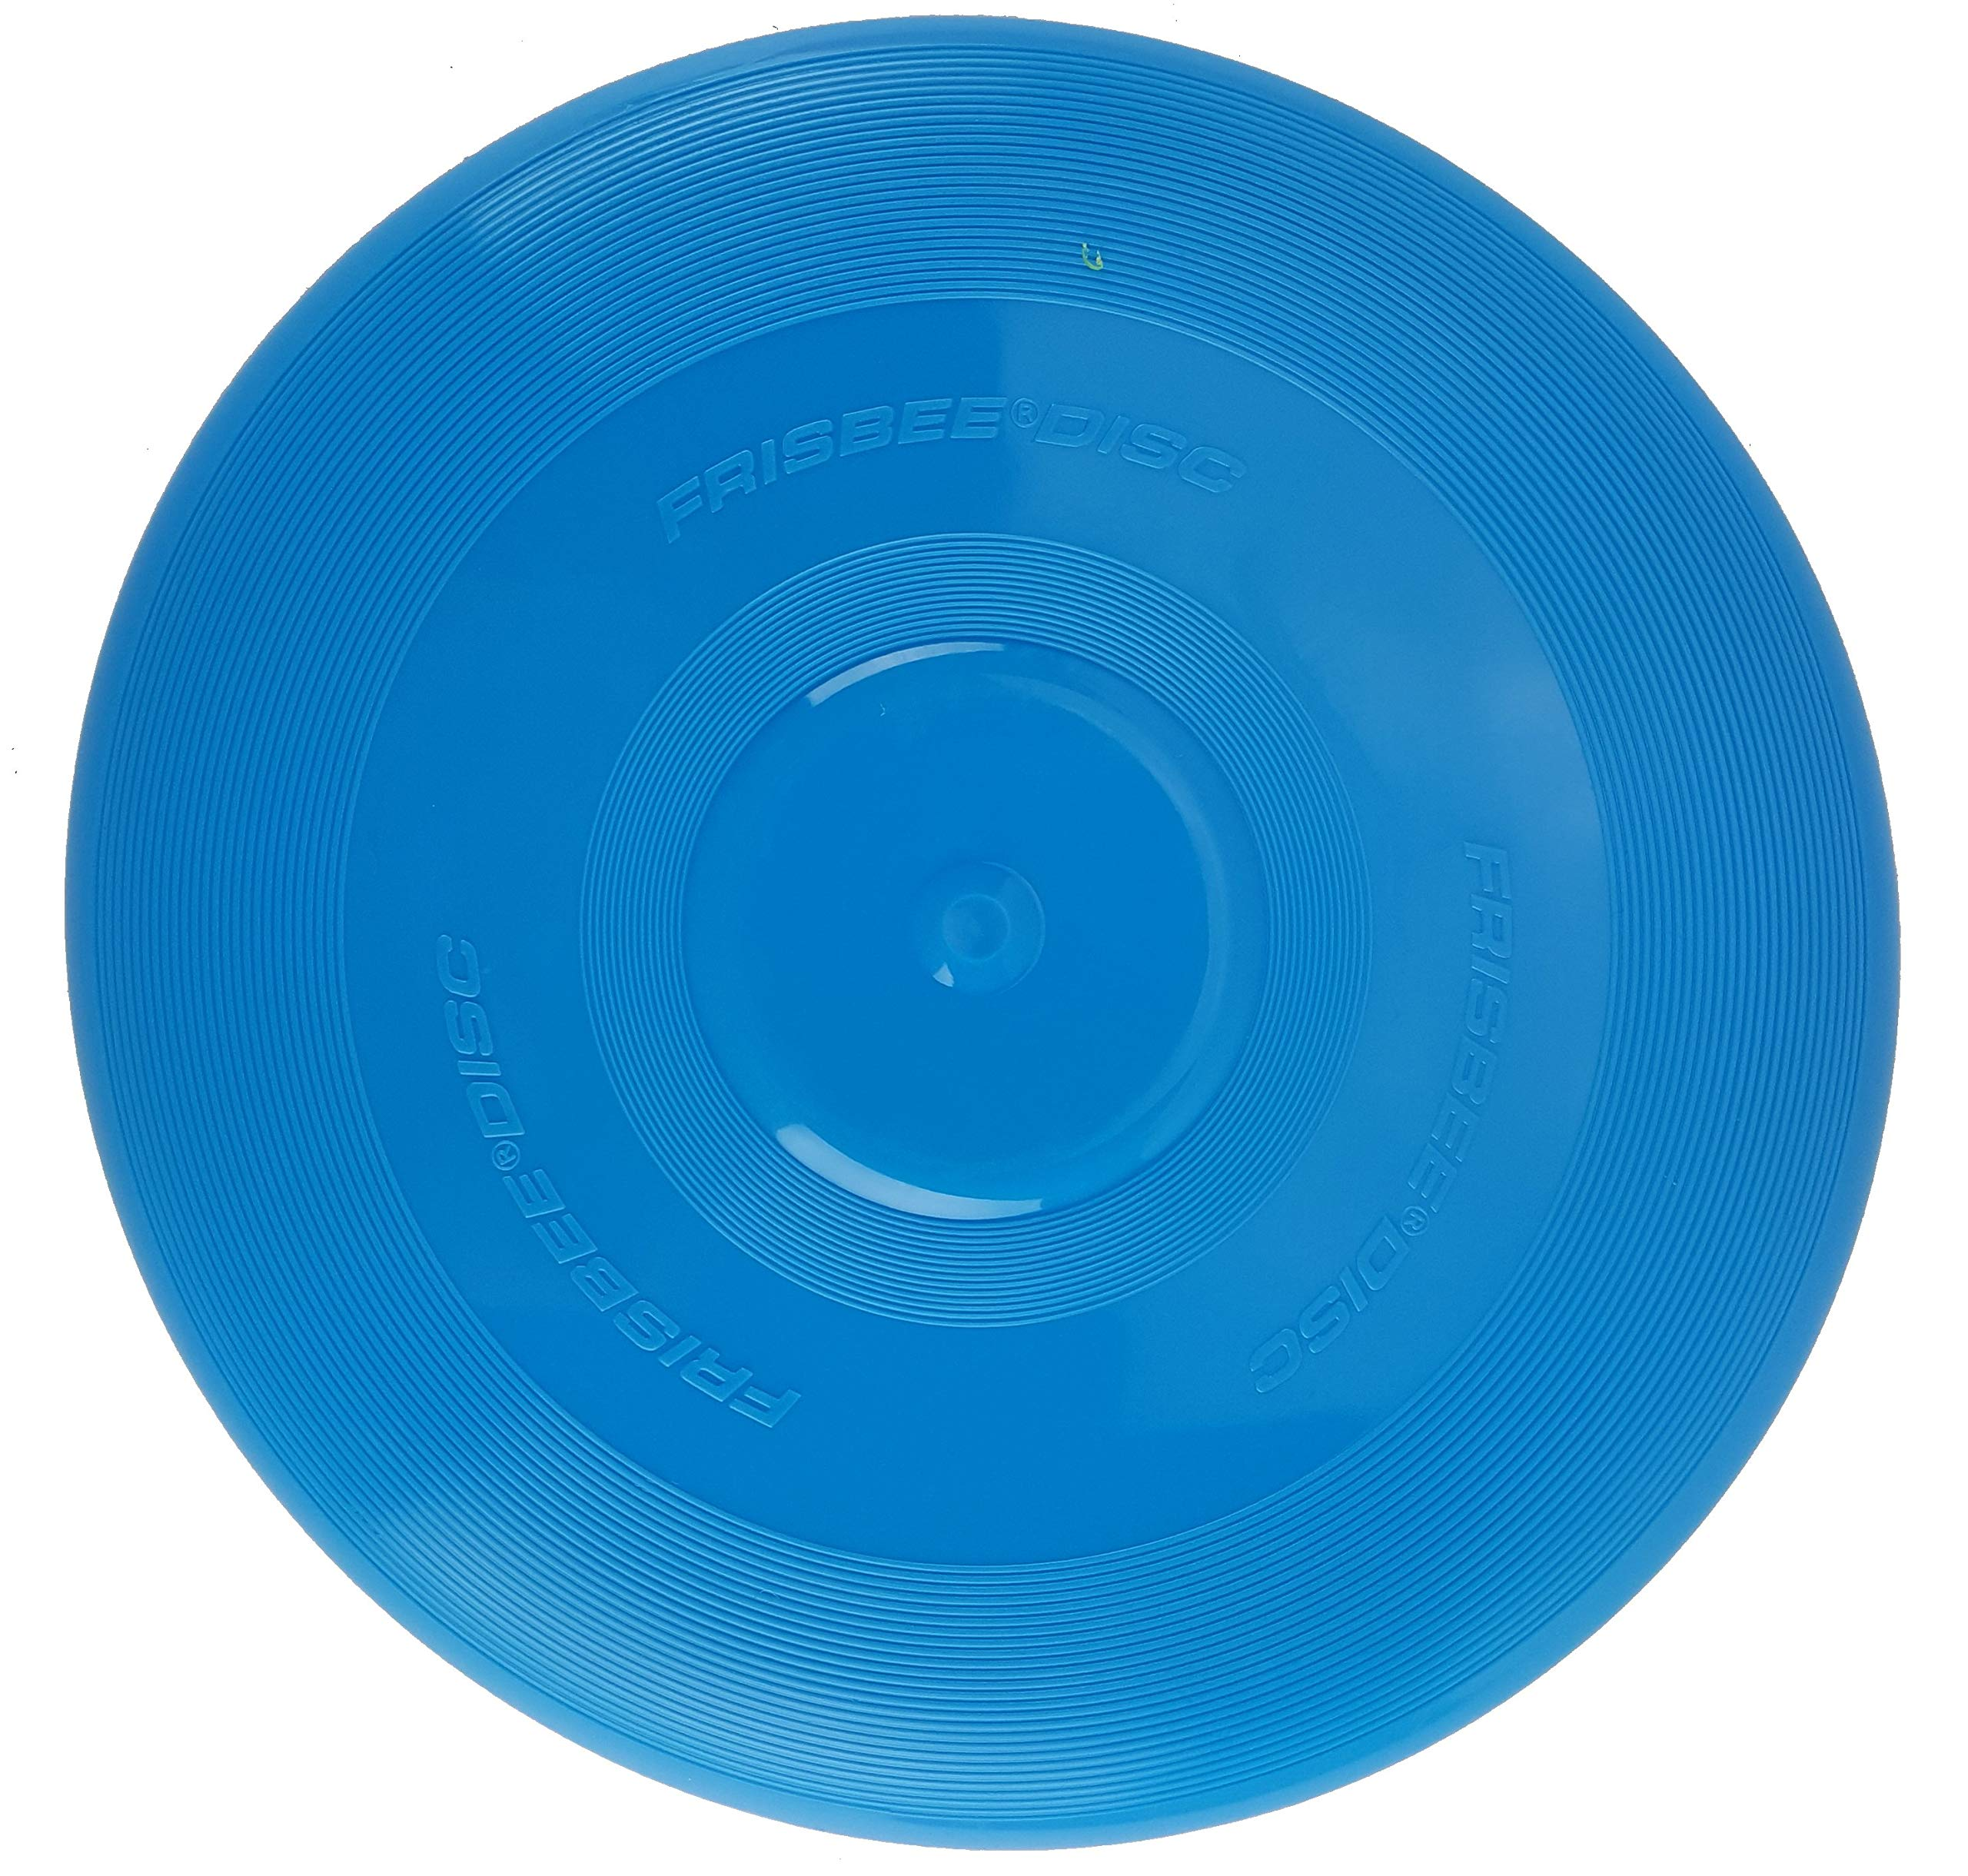 Classic Frisbee 90g Polybag, assorted colors